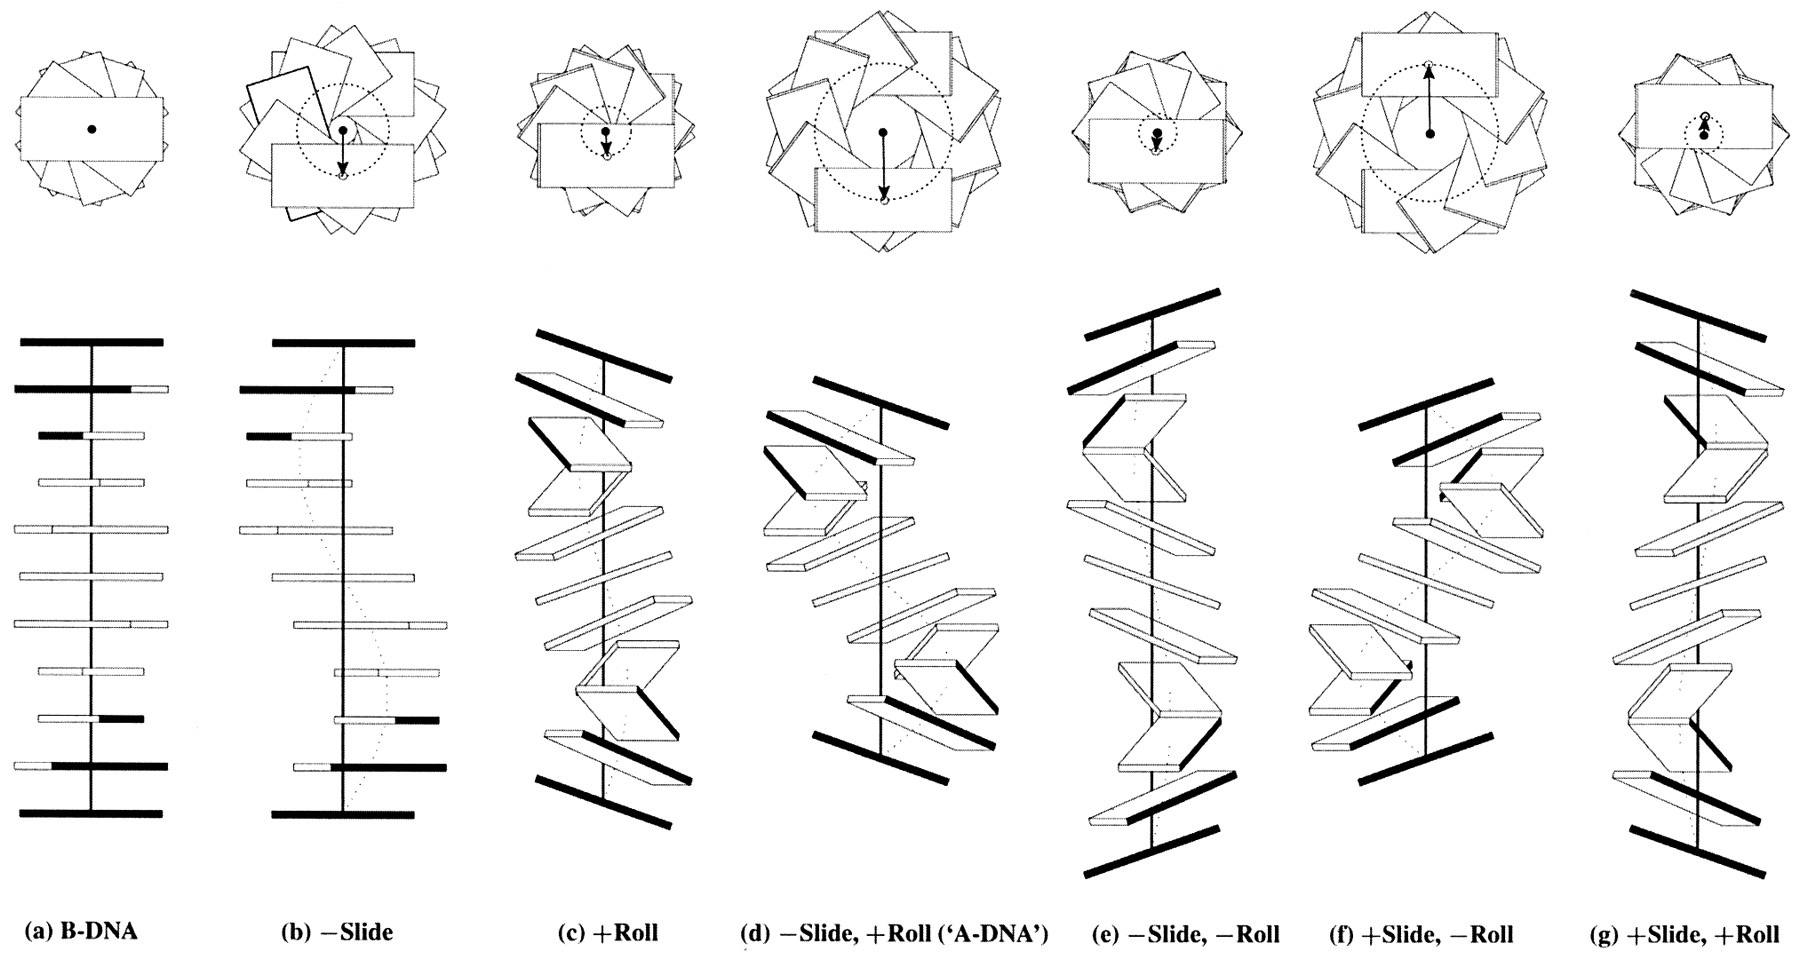 Influence of Slide and Roll on DNA helical conformation